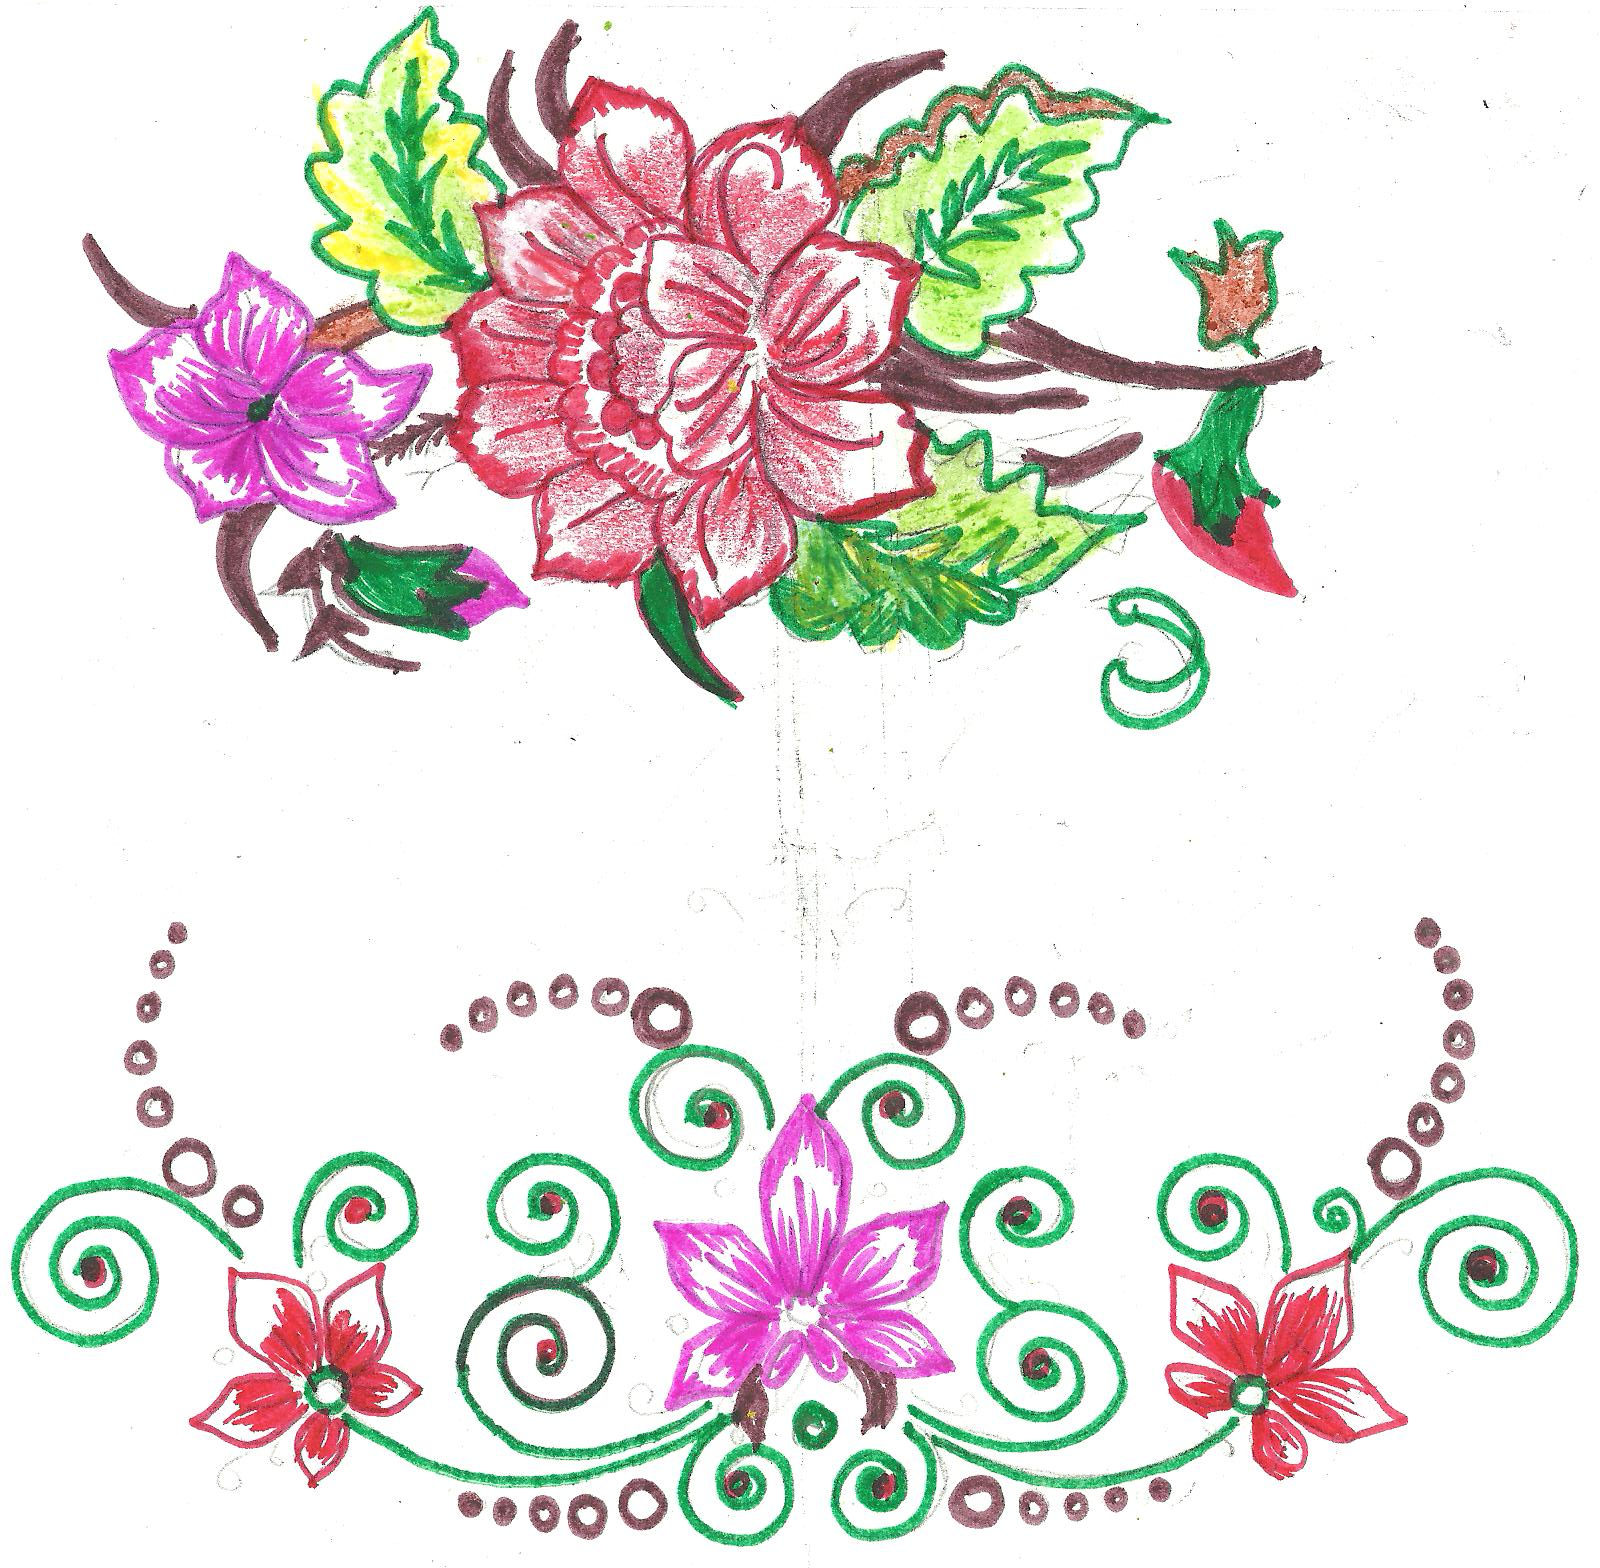 Bed sheet design for paintings - Fabric Paint Designs Fabric Painting